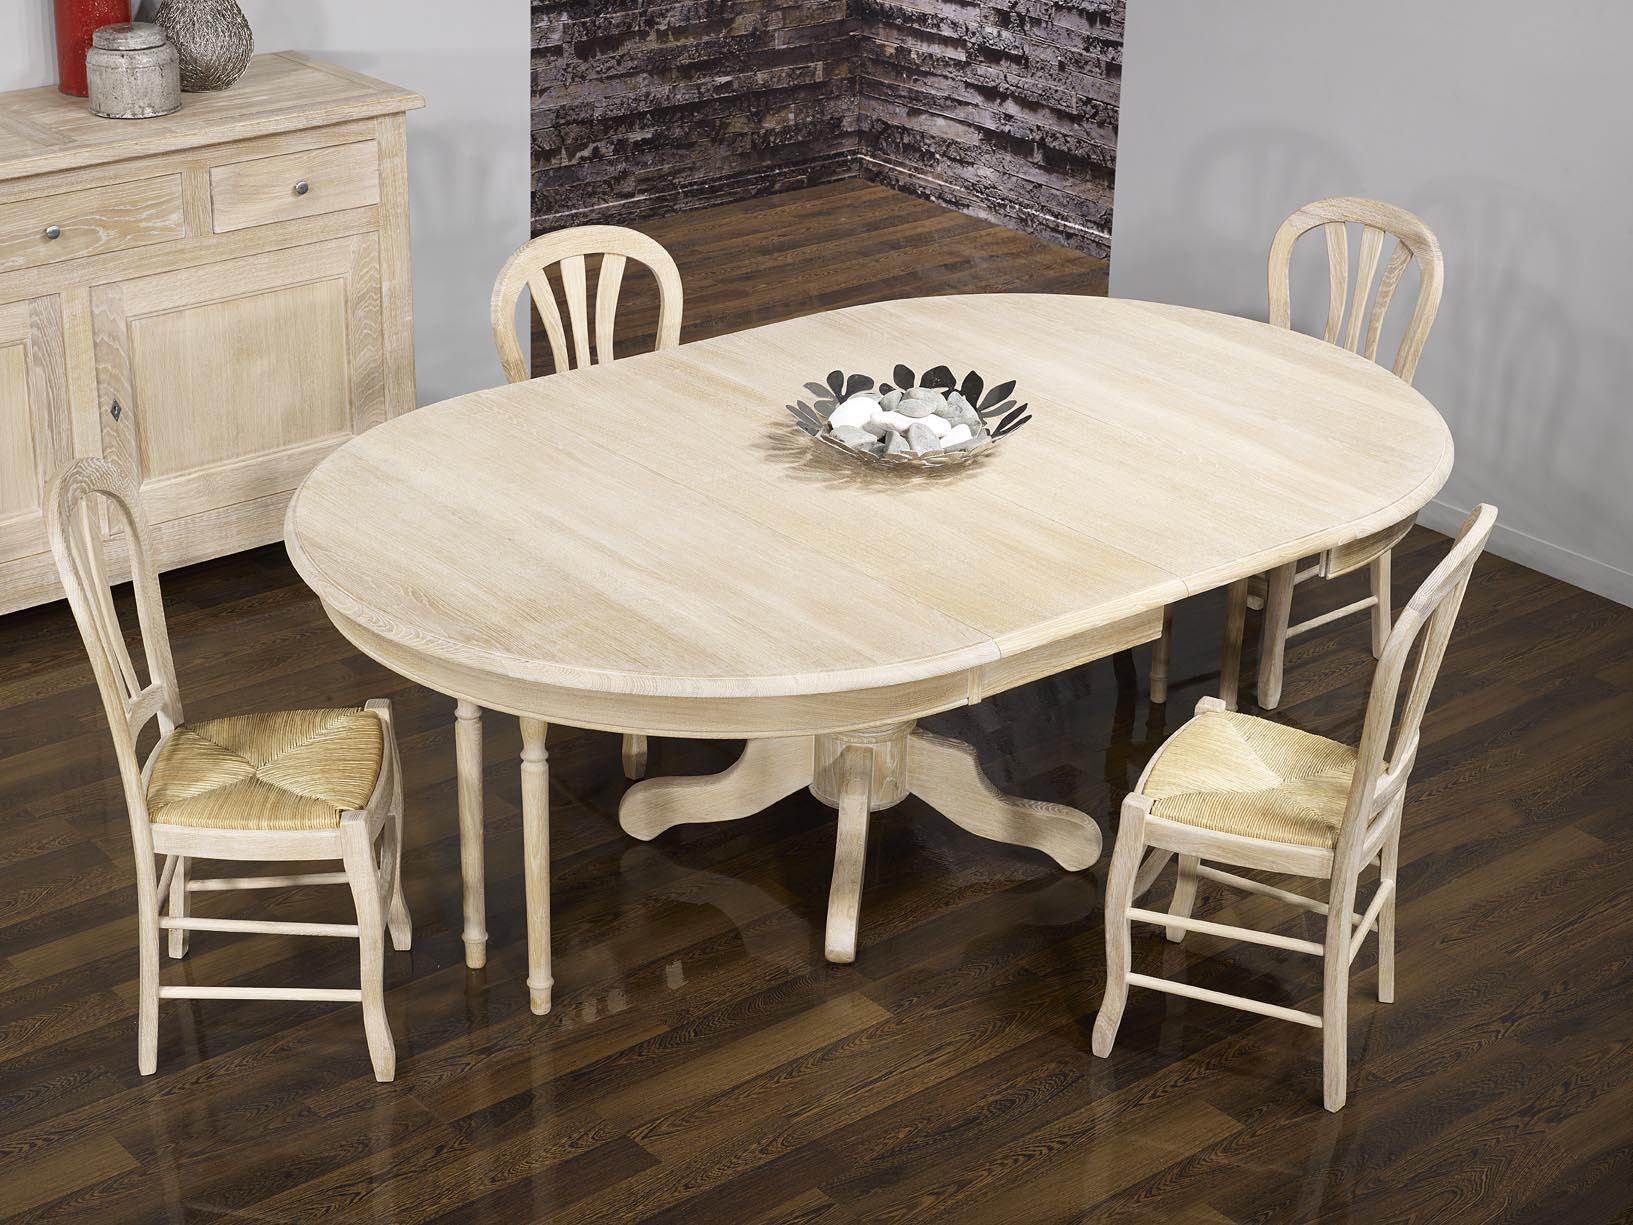 table ronde maude pieds central diametre 140 en ch ne massif de style louis philipe finition. Black Bedroom Furniture Sets. Home Design Ideas